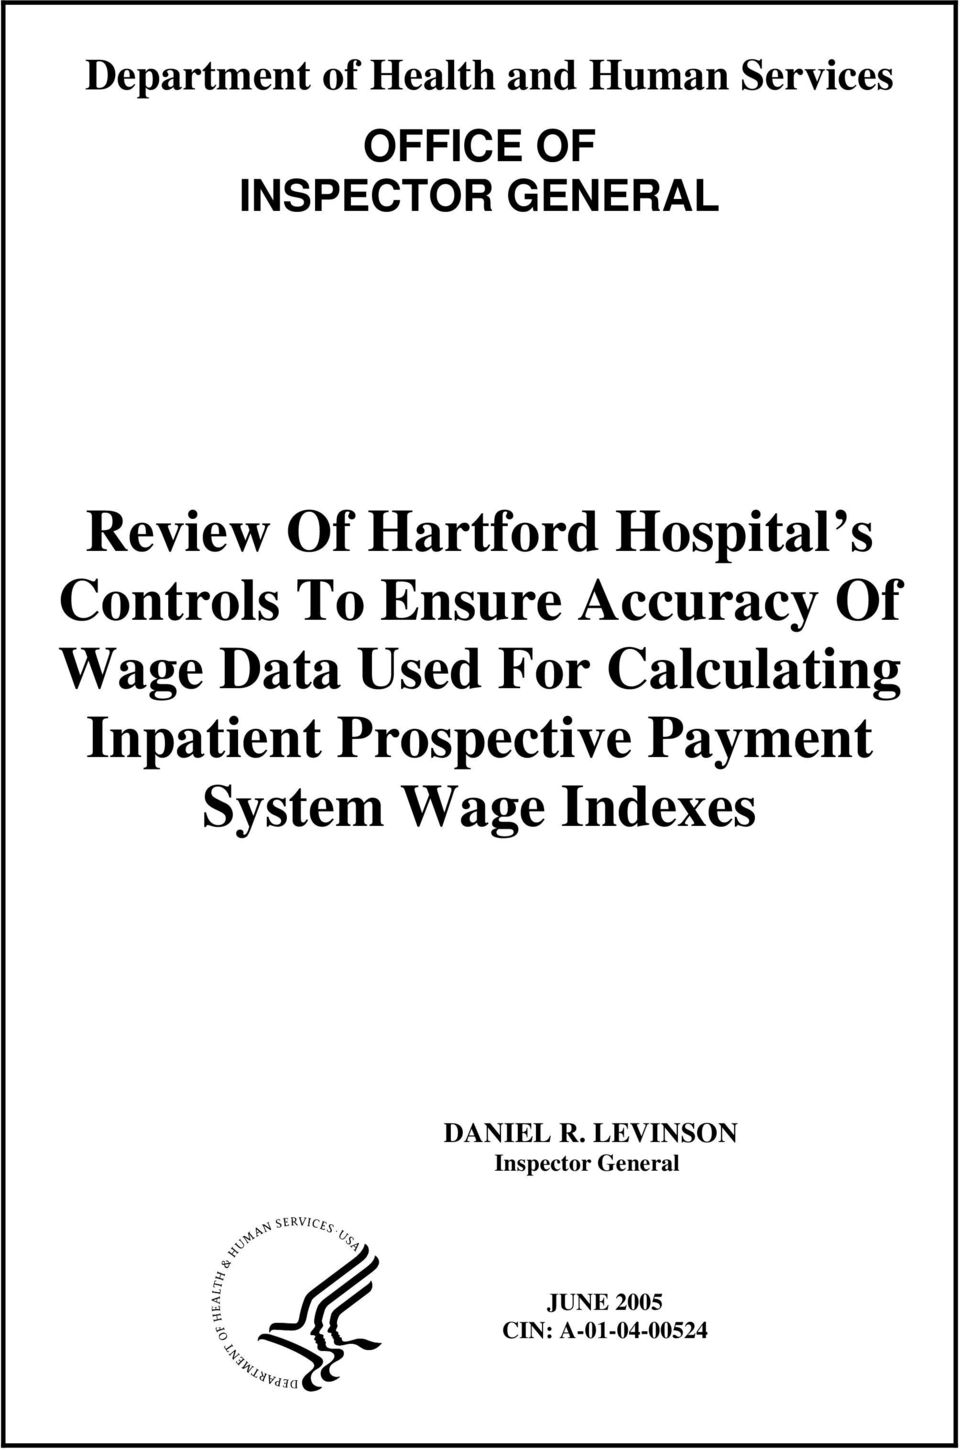 Data Used For Calculating Inpatient Prospective Payment System Wage